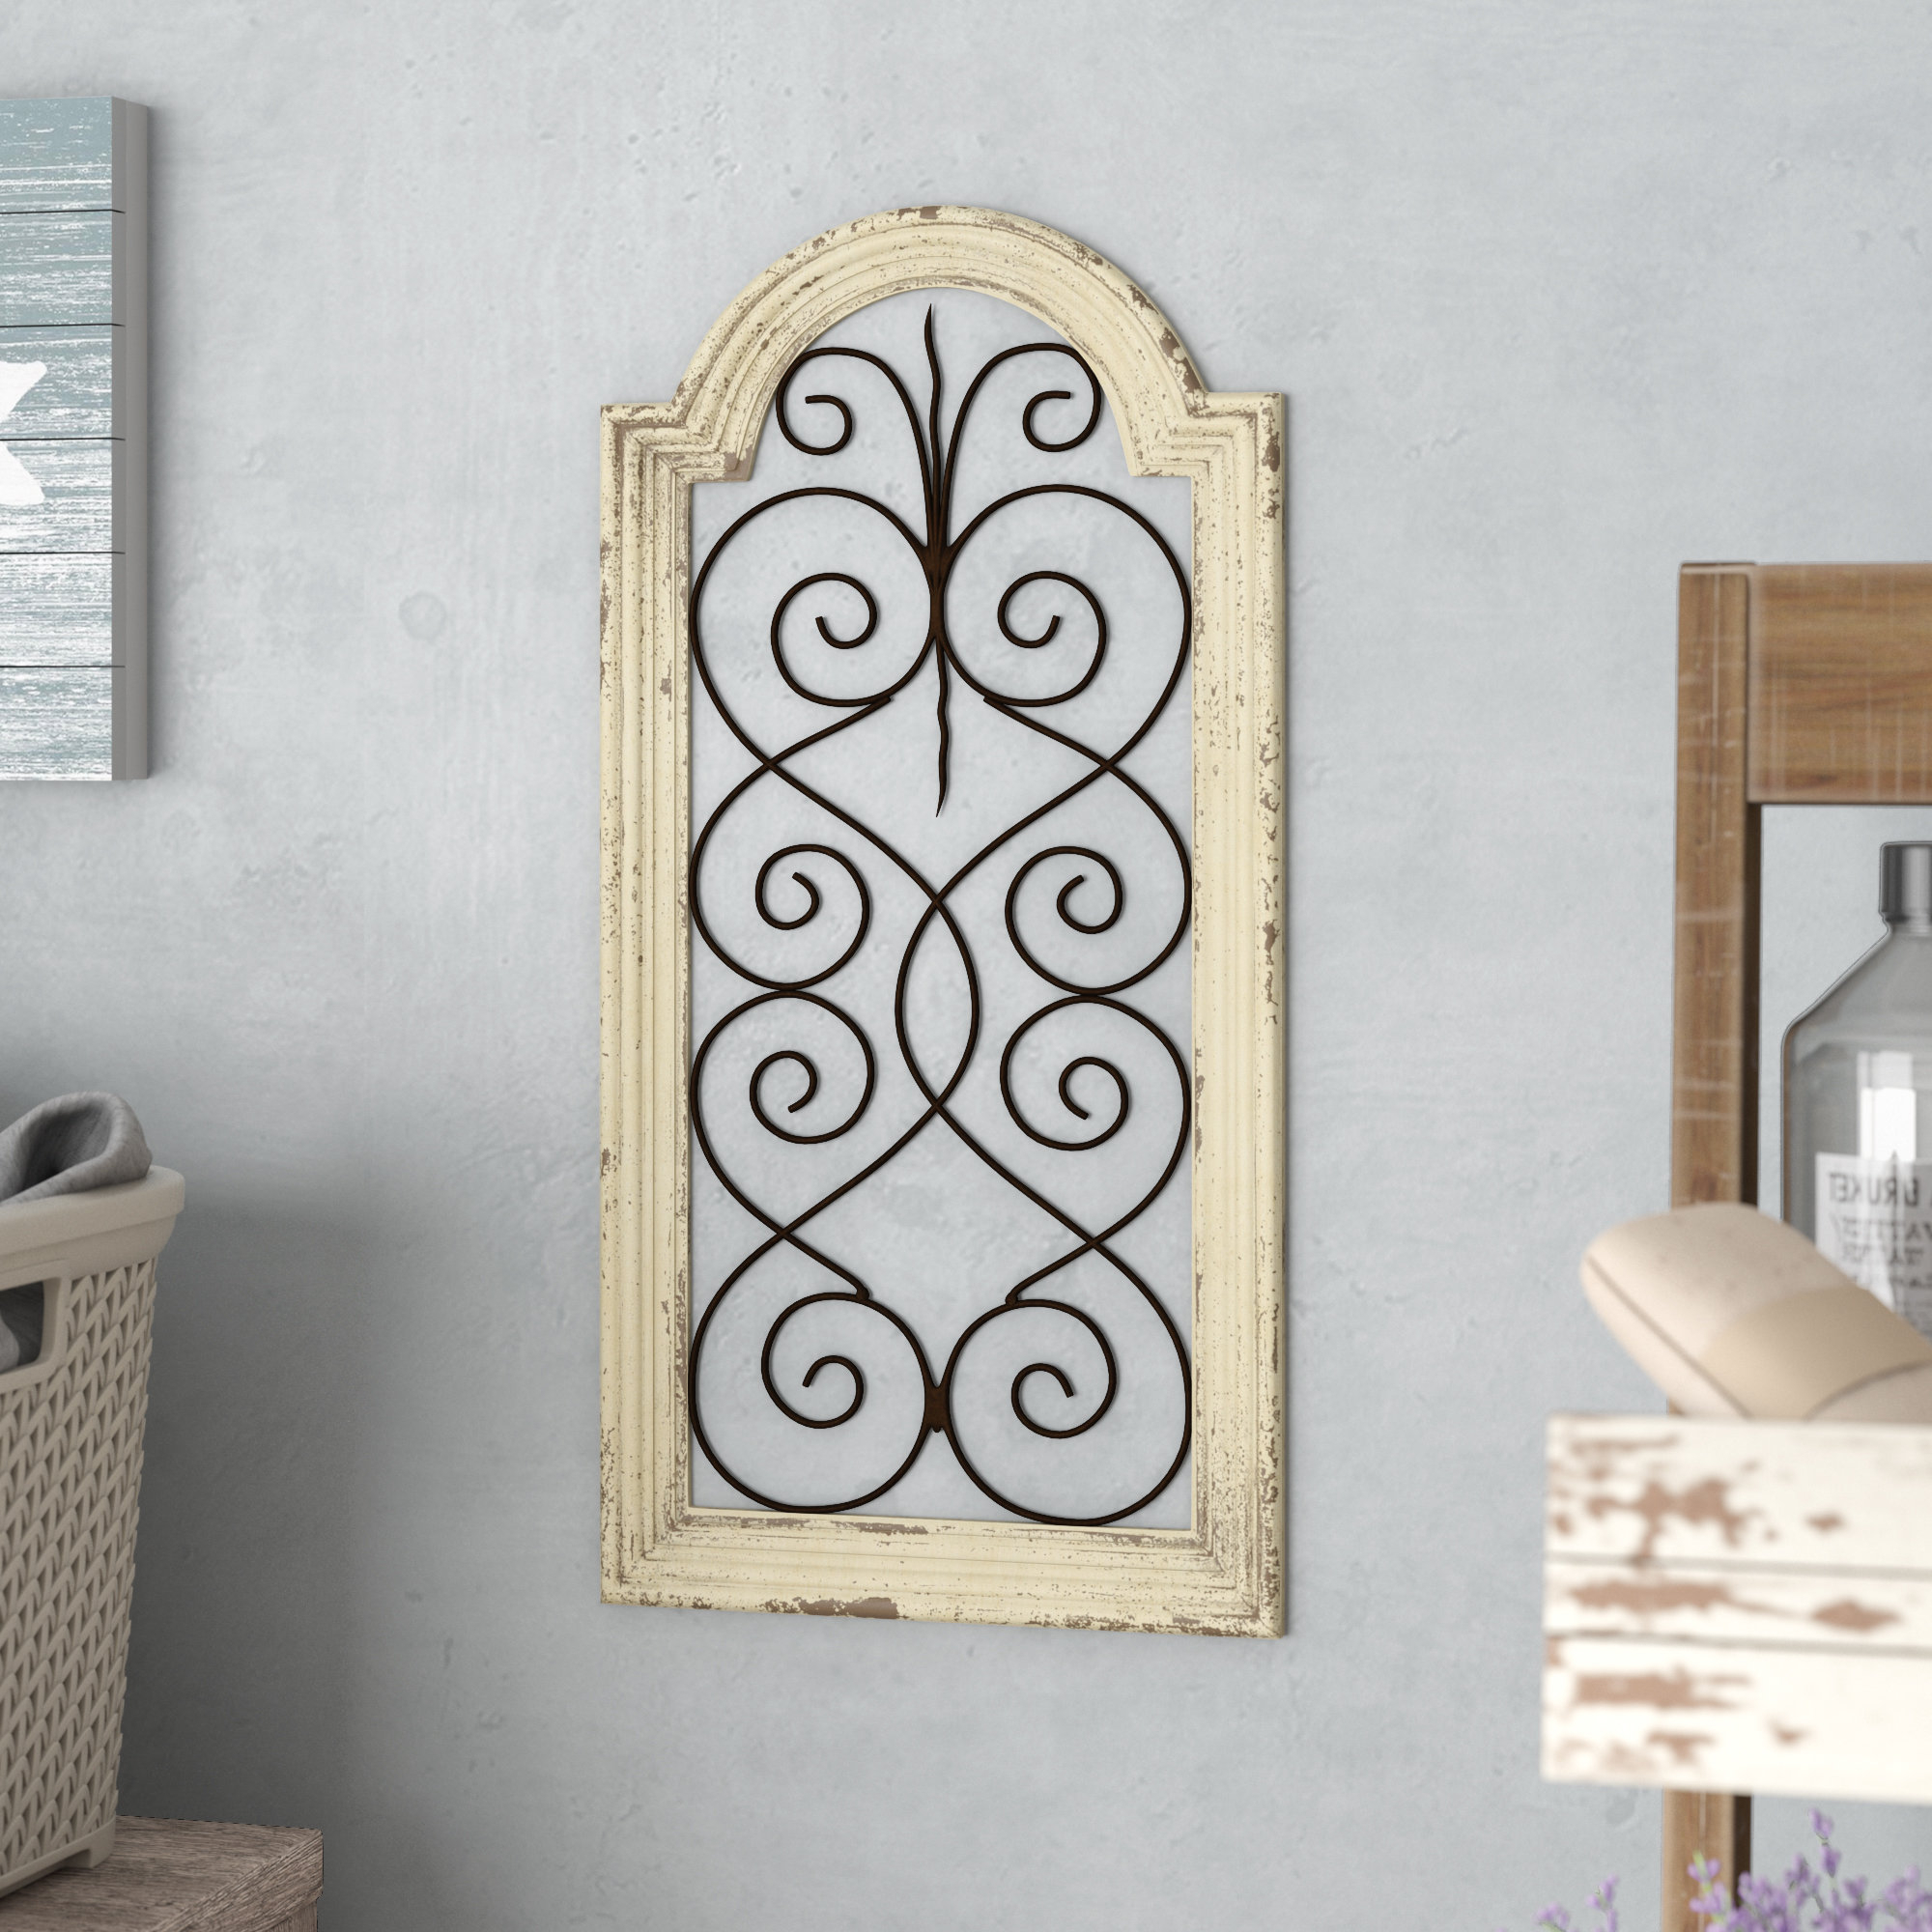 1 Piece Ortie Panel Wall Decor Intended For Most Up To Date Lark Manor Ivory Wood/metal Wall Décor & Reviews (View 2 of 20)